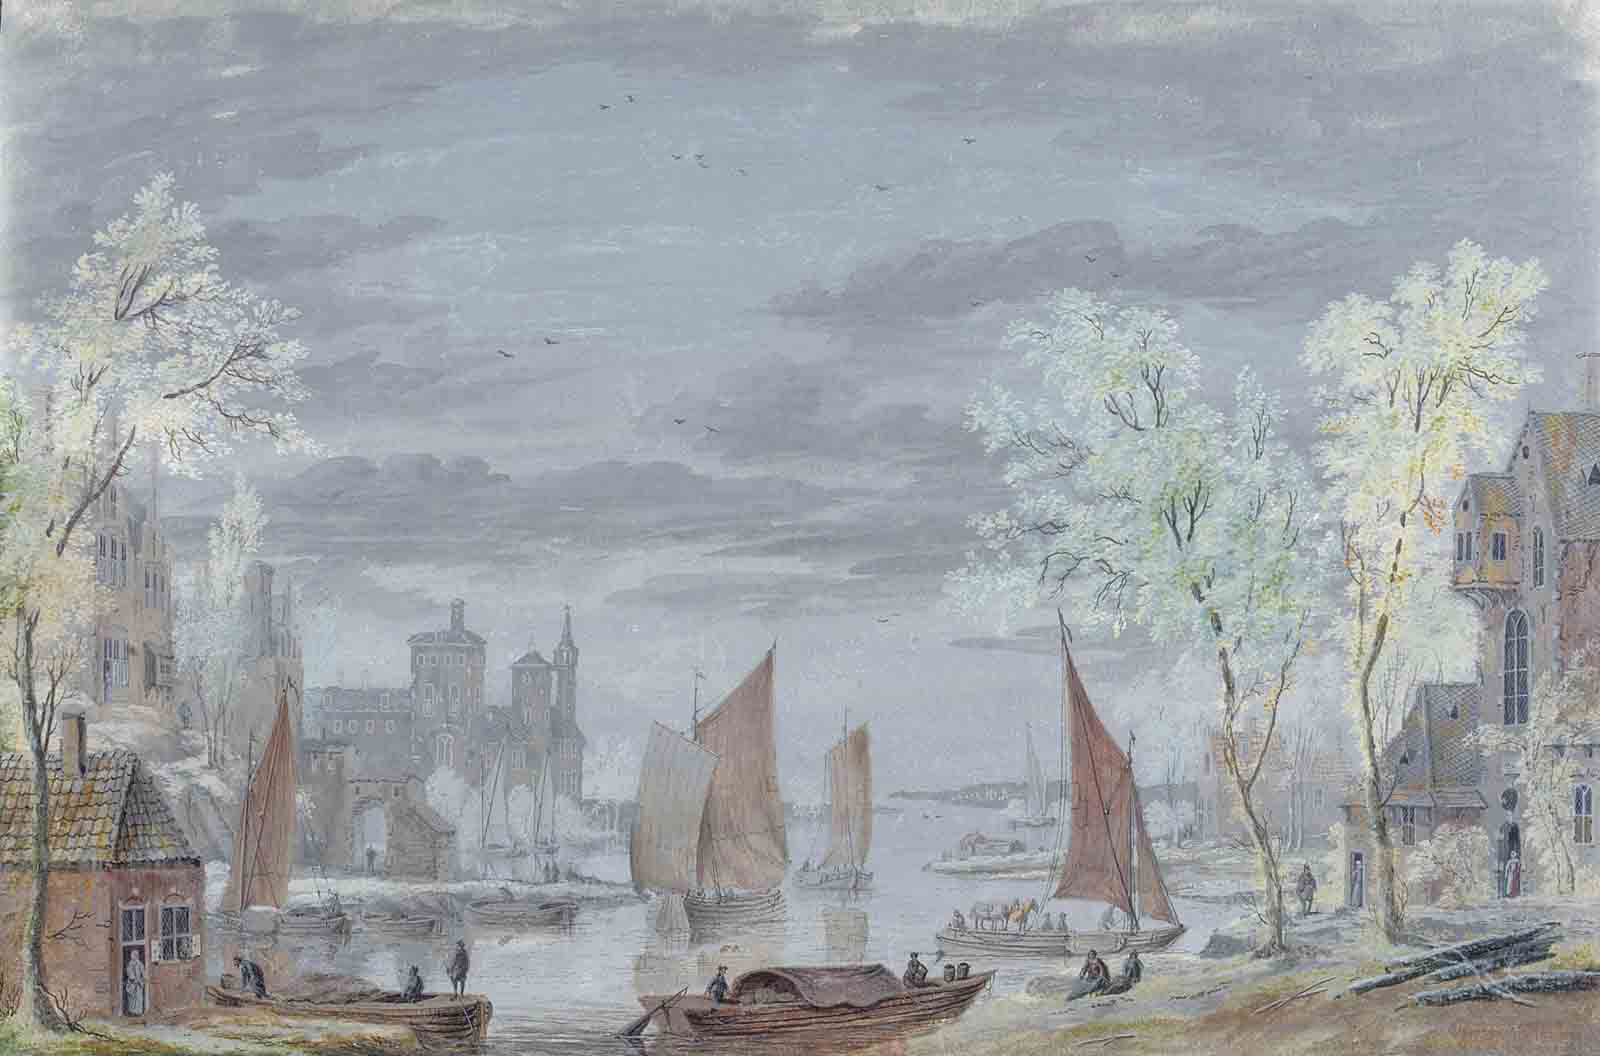 View of shipping on a river, a castle beyond